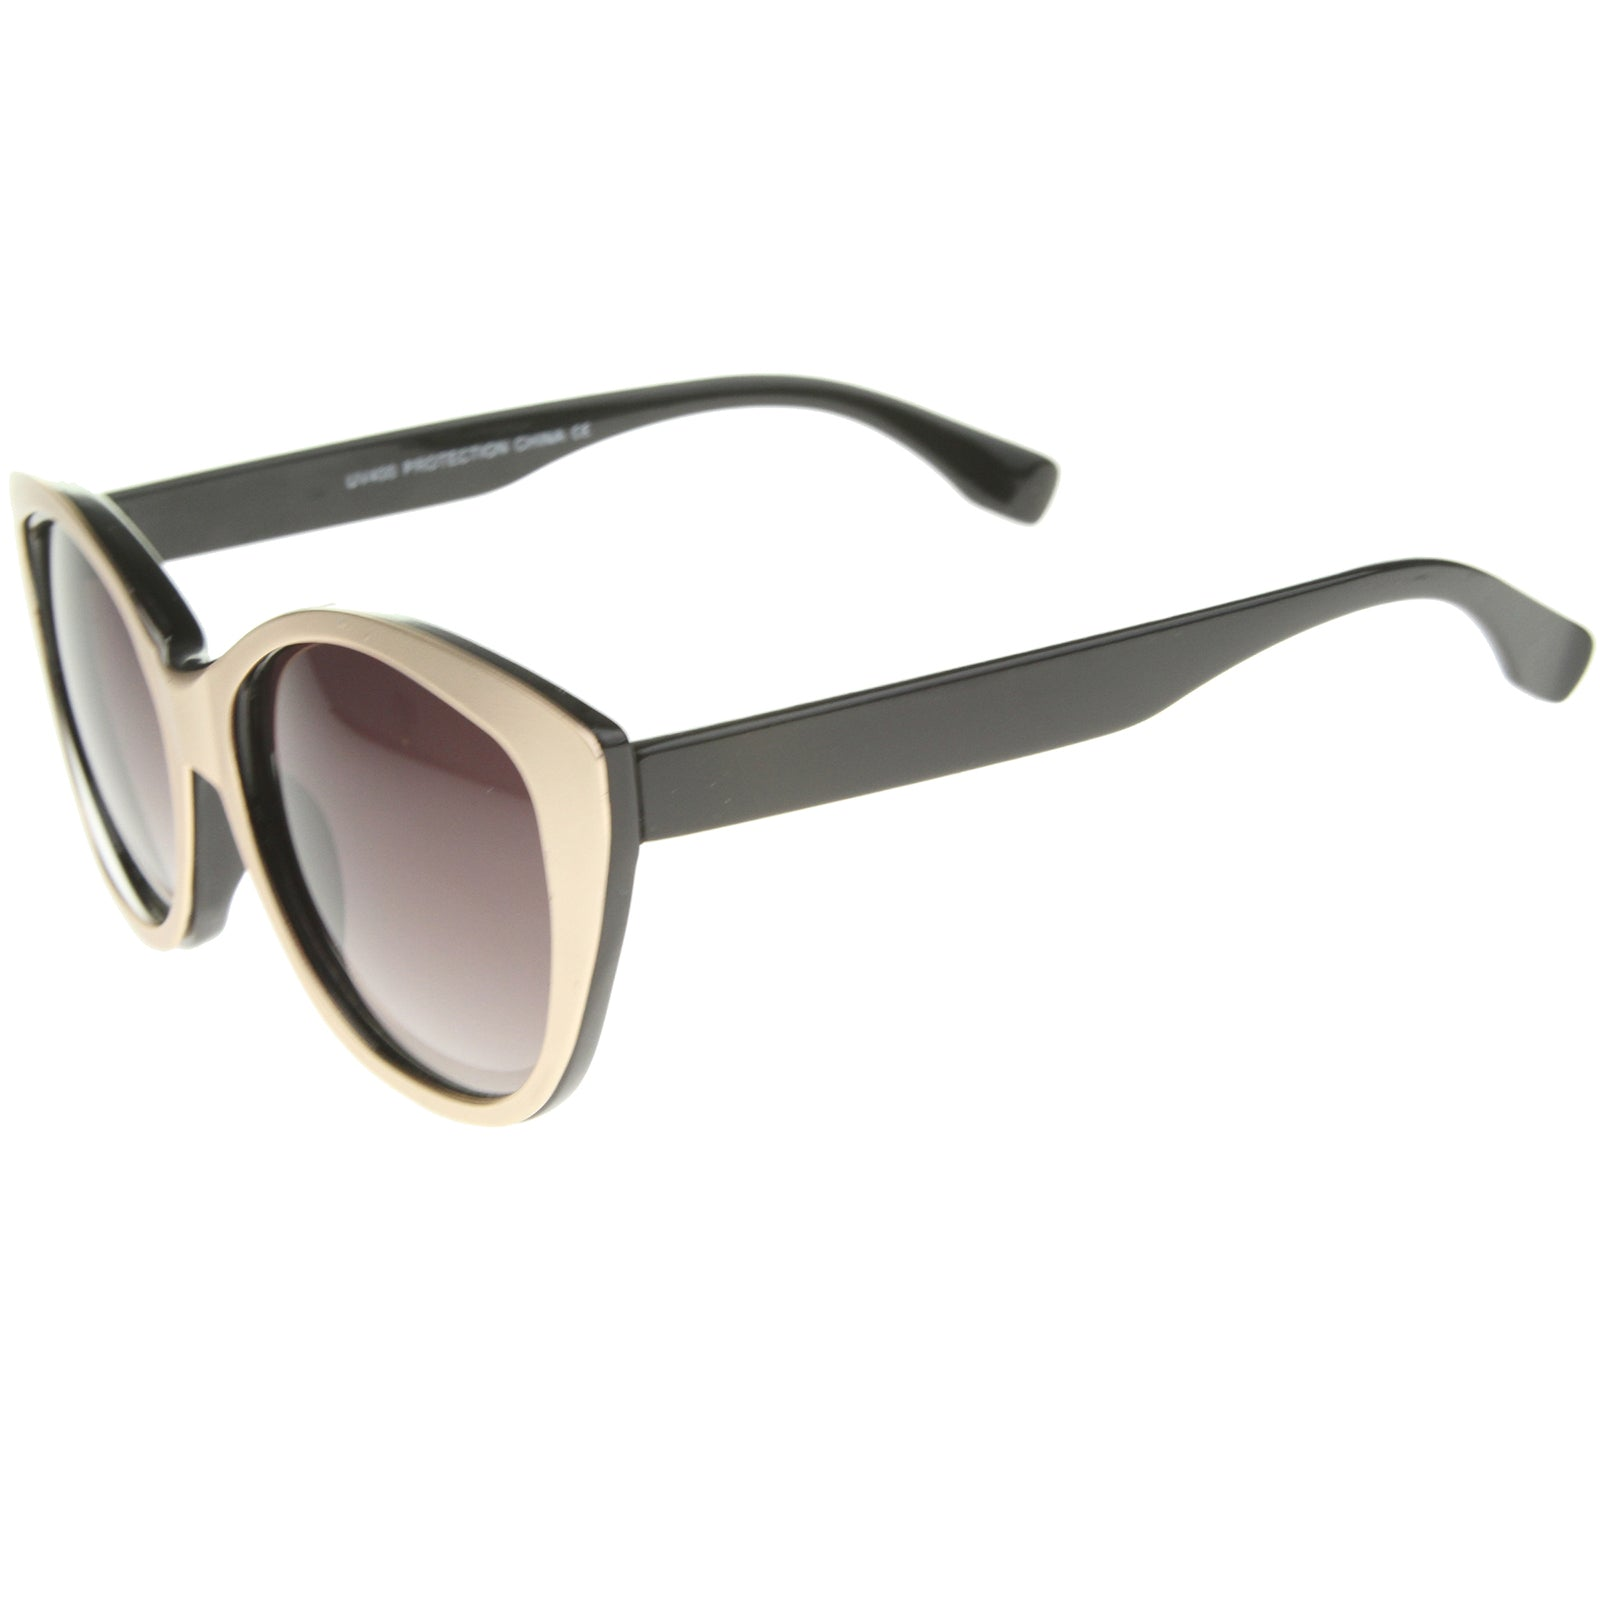 Women's High Fashion Two-Toned Tinted Lens Oversize Cat Eye Sunglasses 55mm - sunglass.la - 3